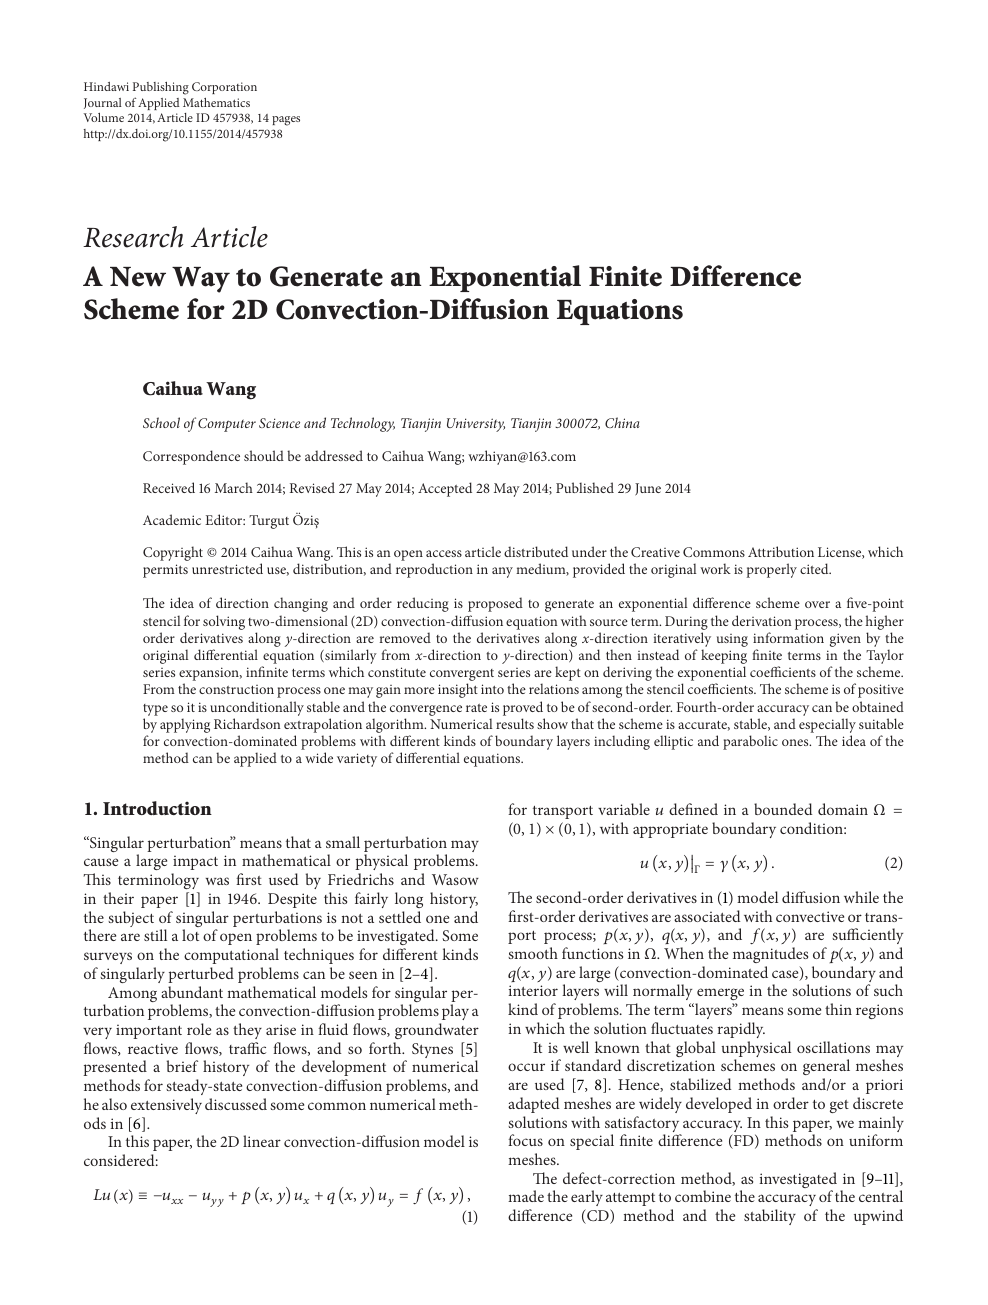 A New Way to Generate an Exponential Finite Difference